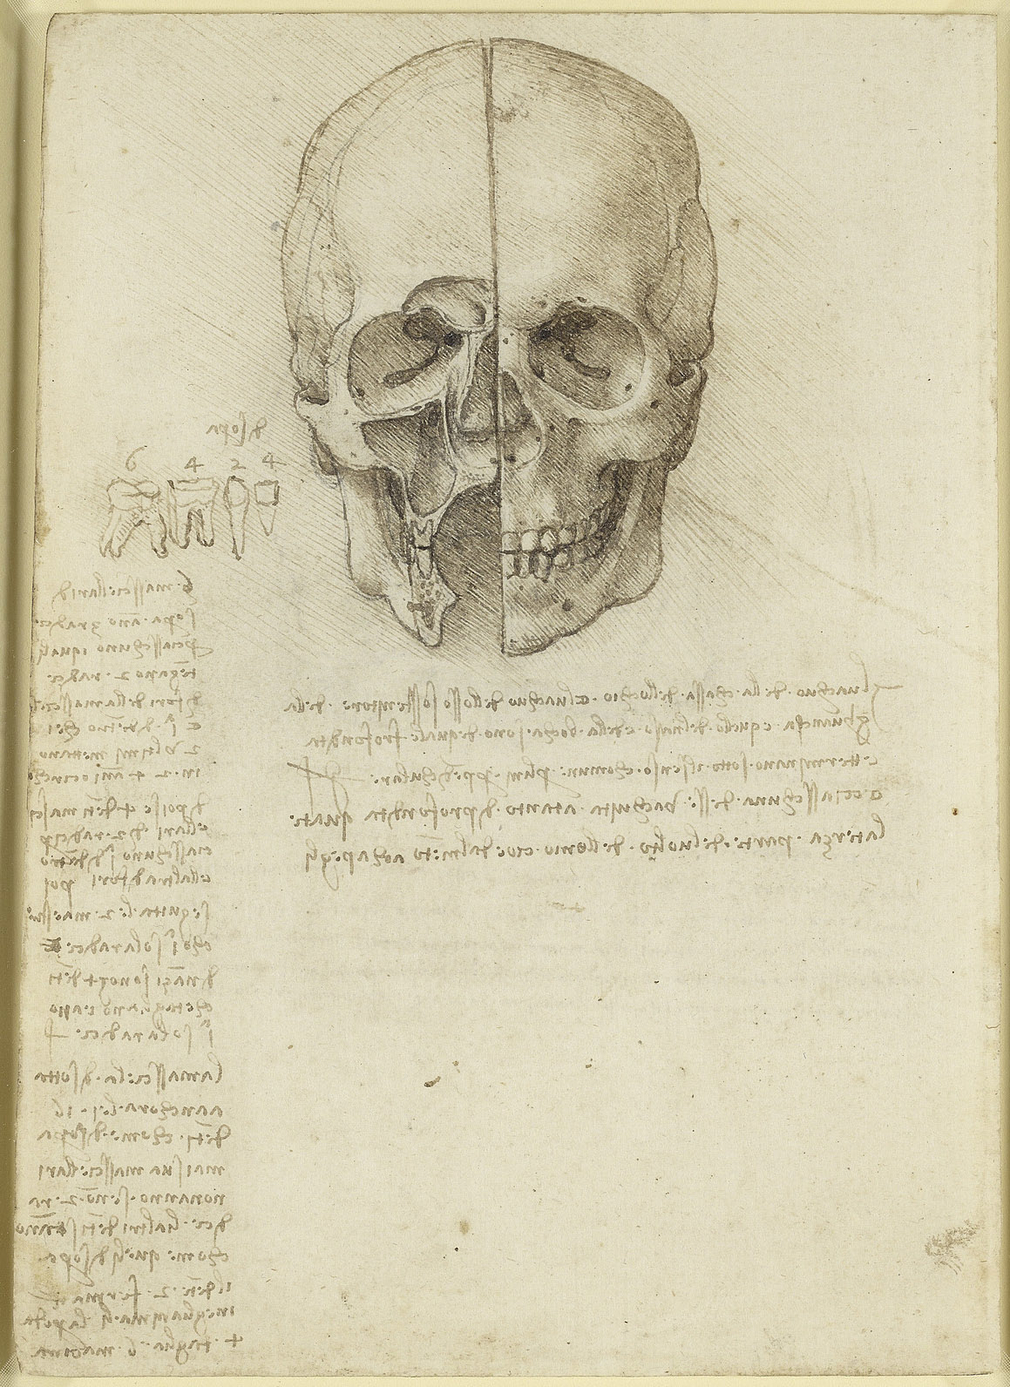 <p>A drawing of askull viewed obliquely from above and the left, whichshowstheintracranial nervesand vessels.With notes belowon the importance of the cranium as the seat of all nervous activities, in Leonardo&rsqu